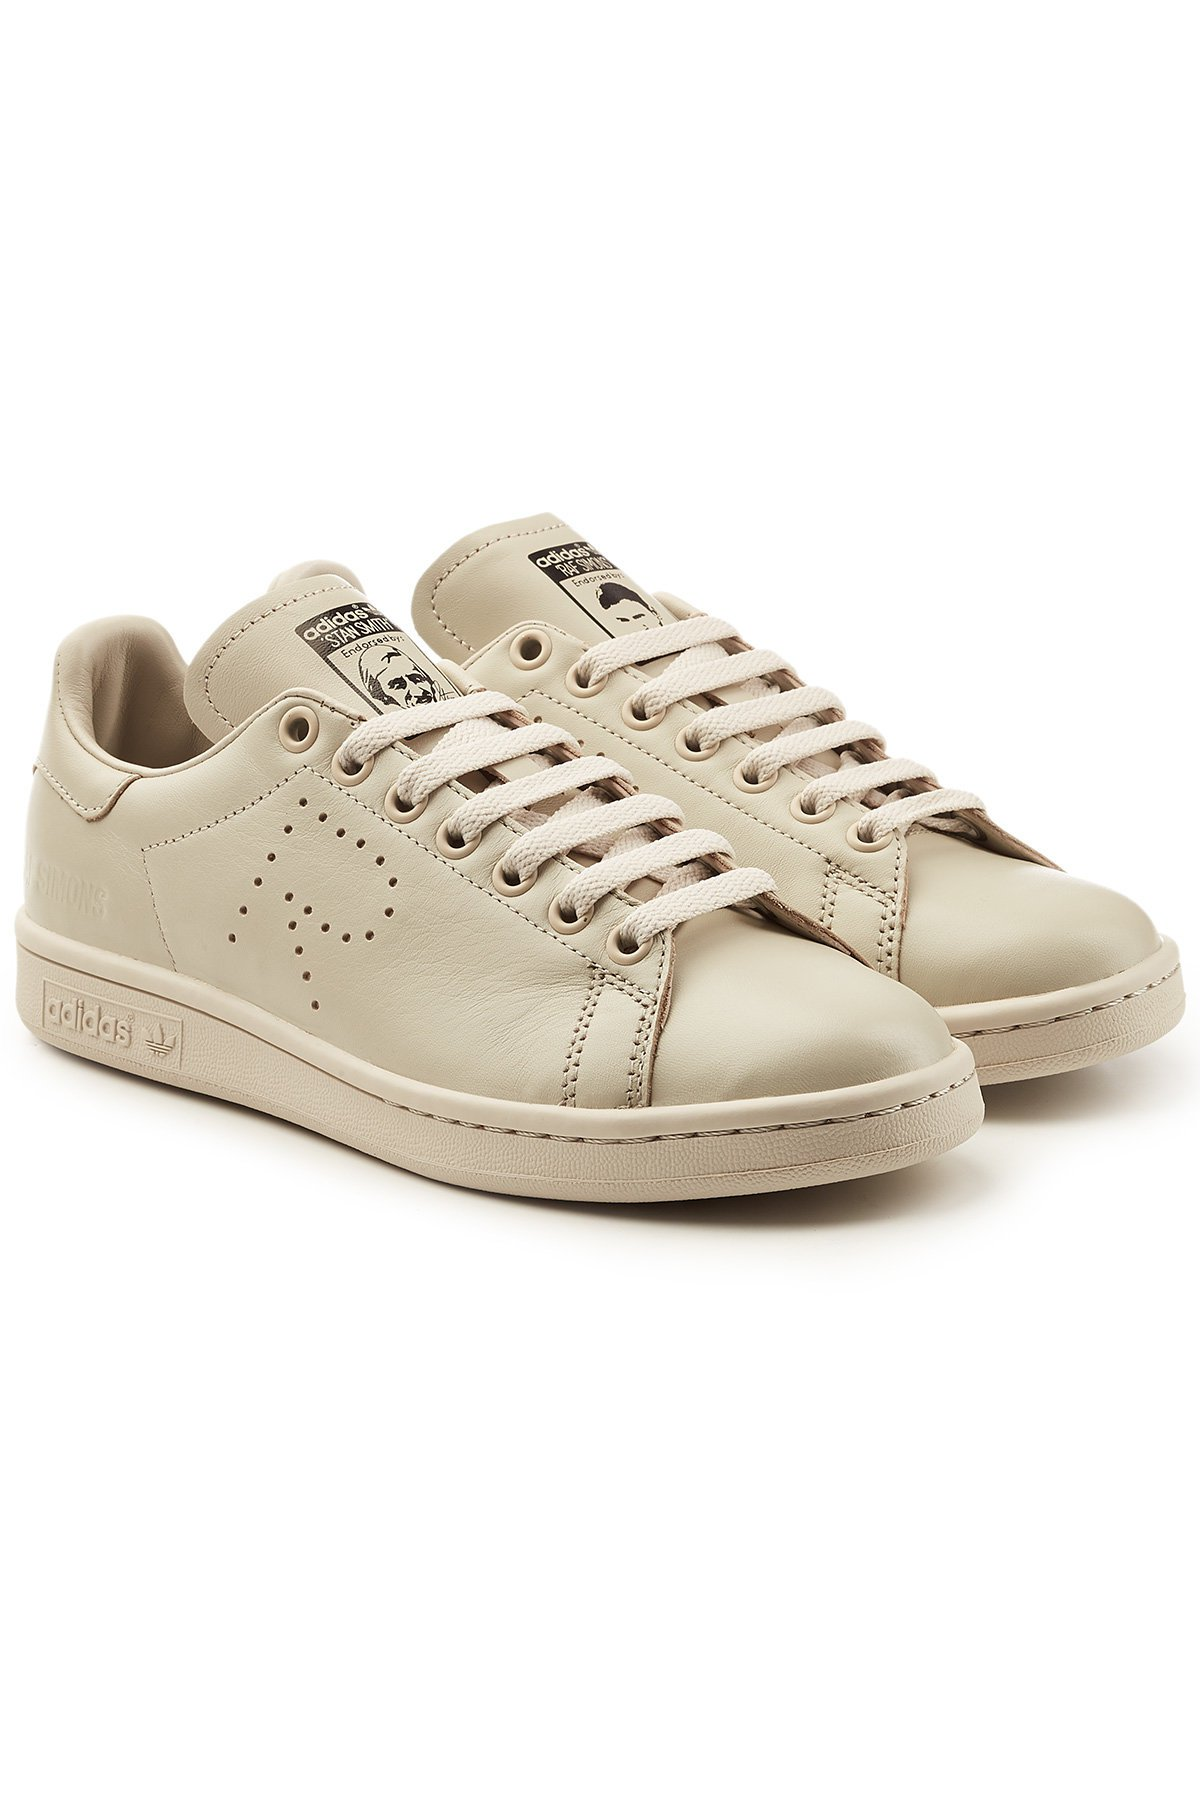 RS Stan Smith Leather Sneakers Gr. UK 6.5